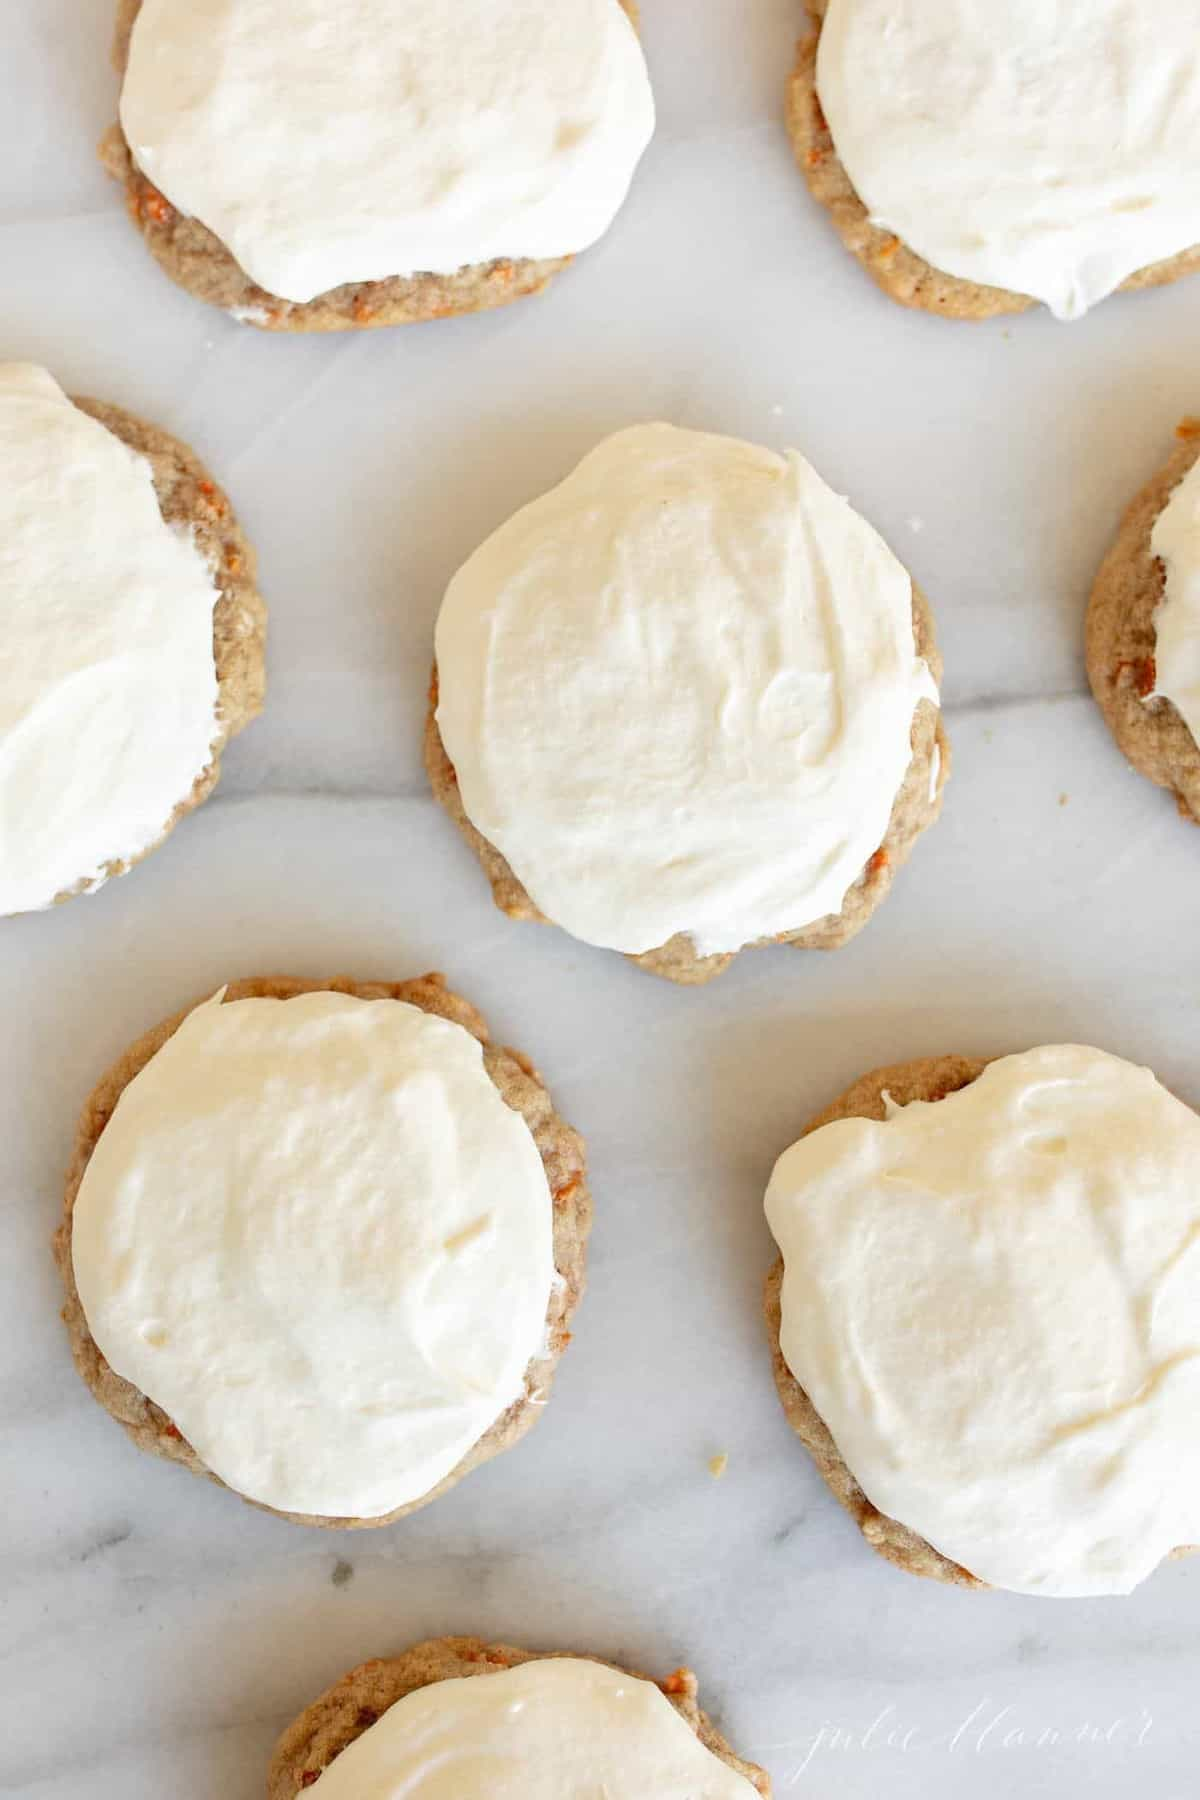 Marble surface with carrot cake cookies covered in cream cheese frosting.